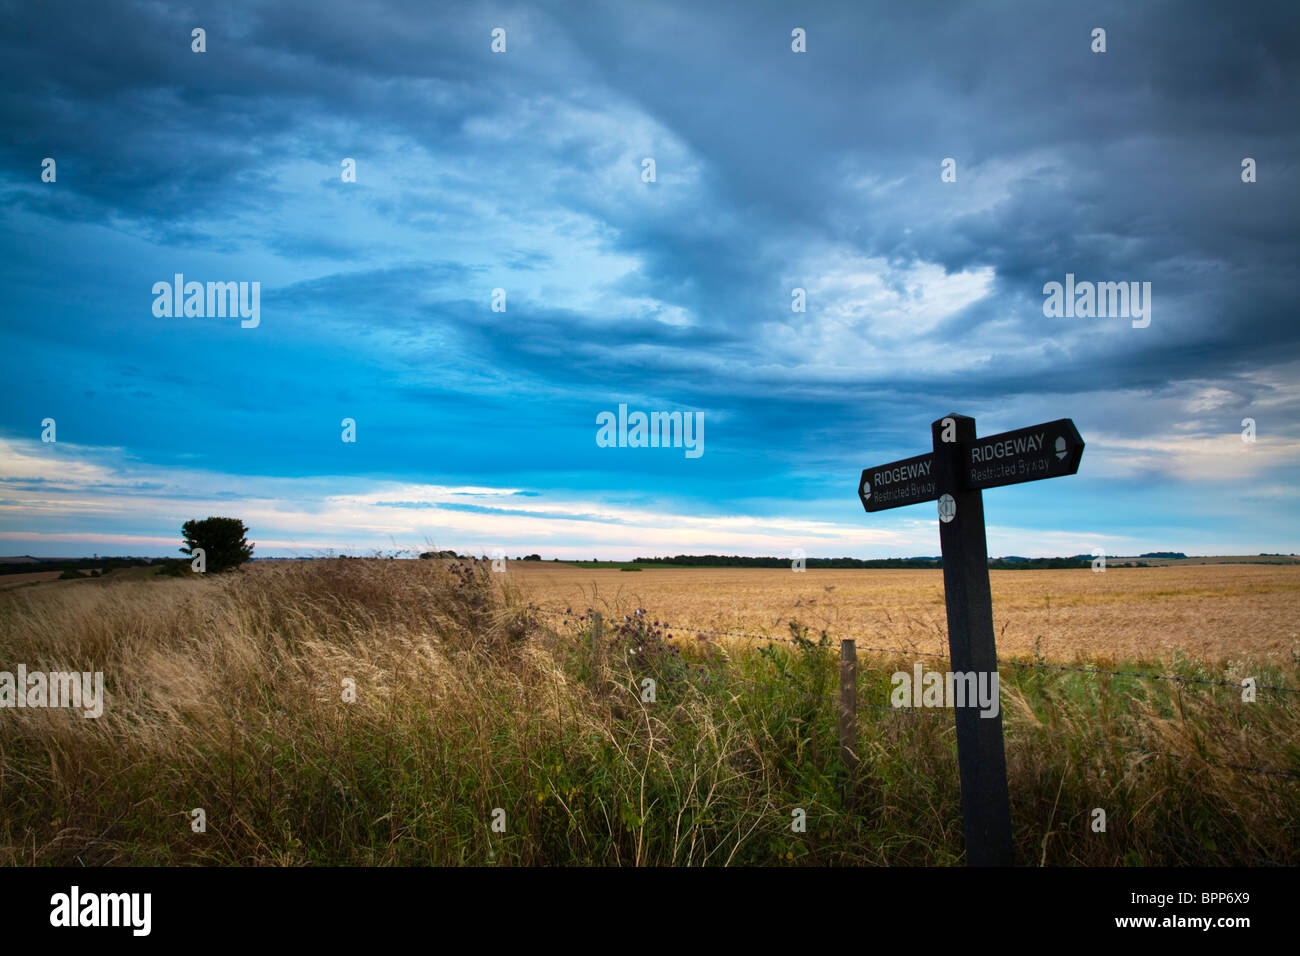 Ridgeway signpost on the downs at West Ilsley on the Oxfordshire and Berkshire border, Uk Stock Photo